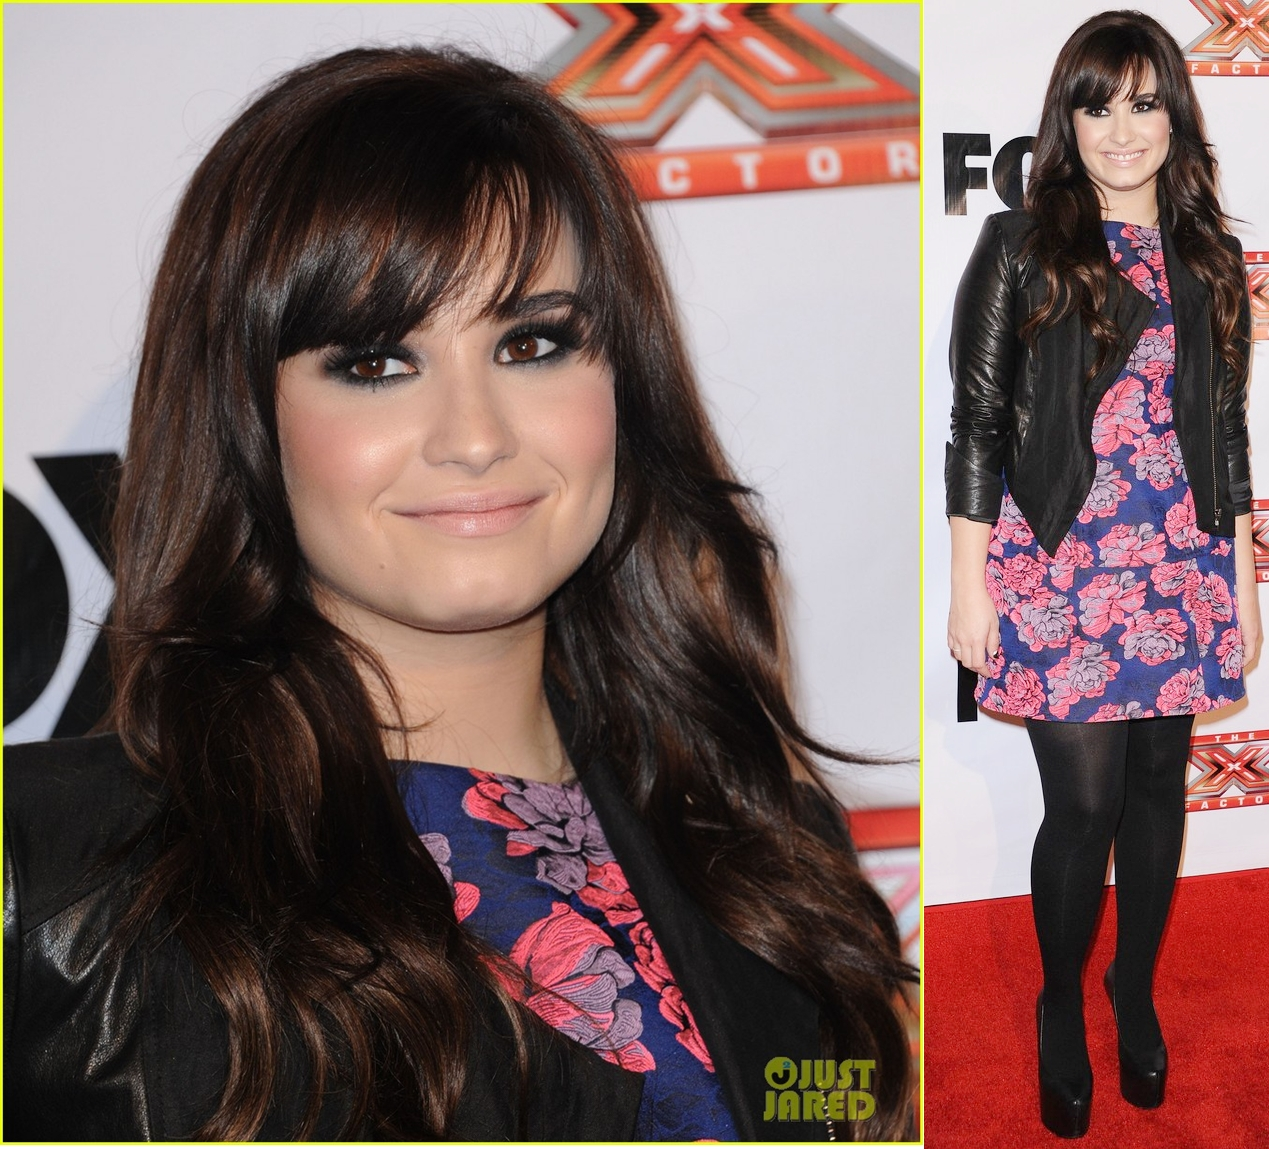 http://3.bp.blogspot.com/-fNvRSnZuJh4/UMHNUxb8ARI/AAAAAAAASDI/WHFEtKI9050/s1600/britney-spears-demi-lovato-x-factor-viewing--party-03.jpg